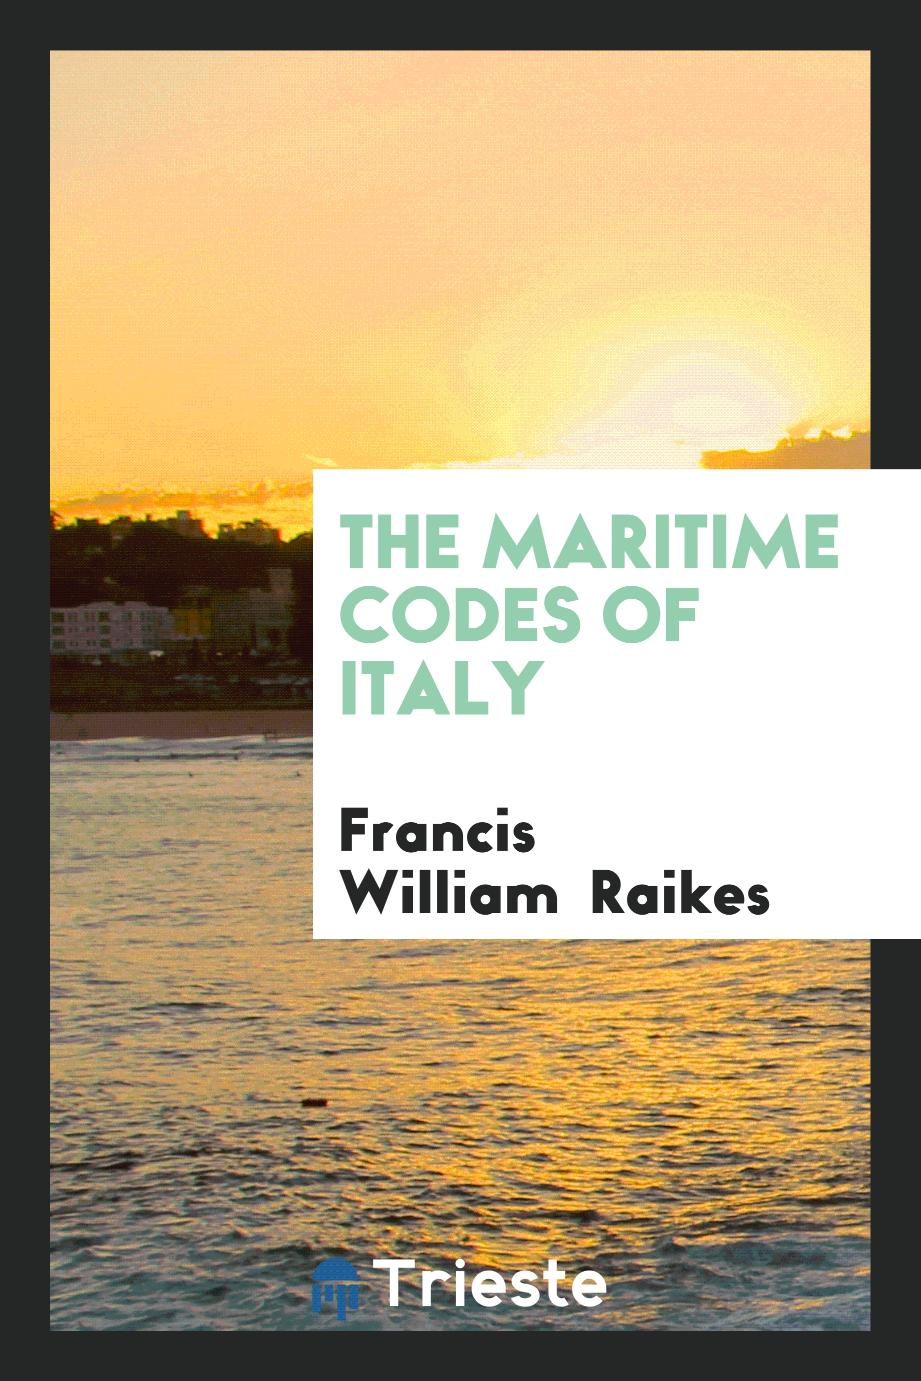 The Maritime Codes of Italy